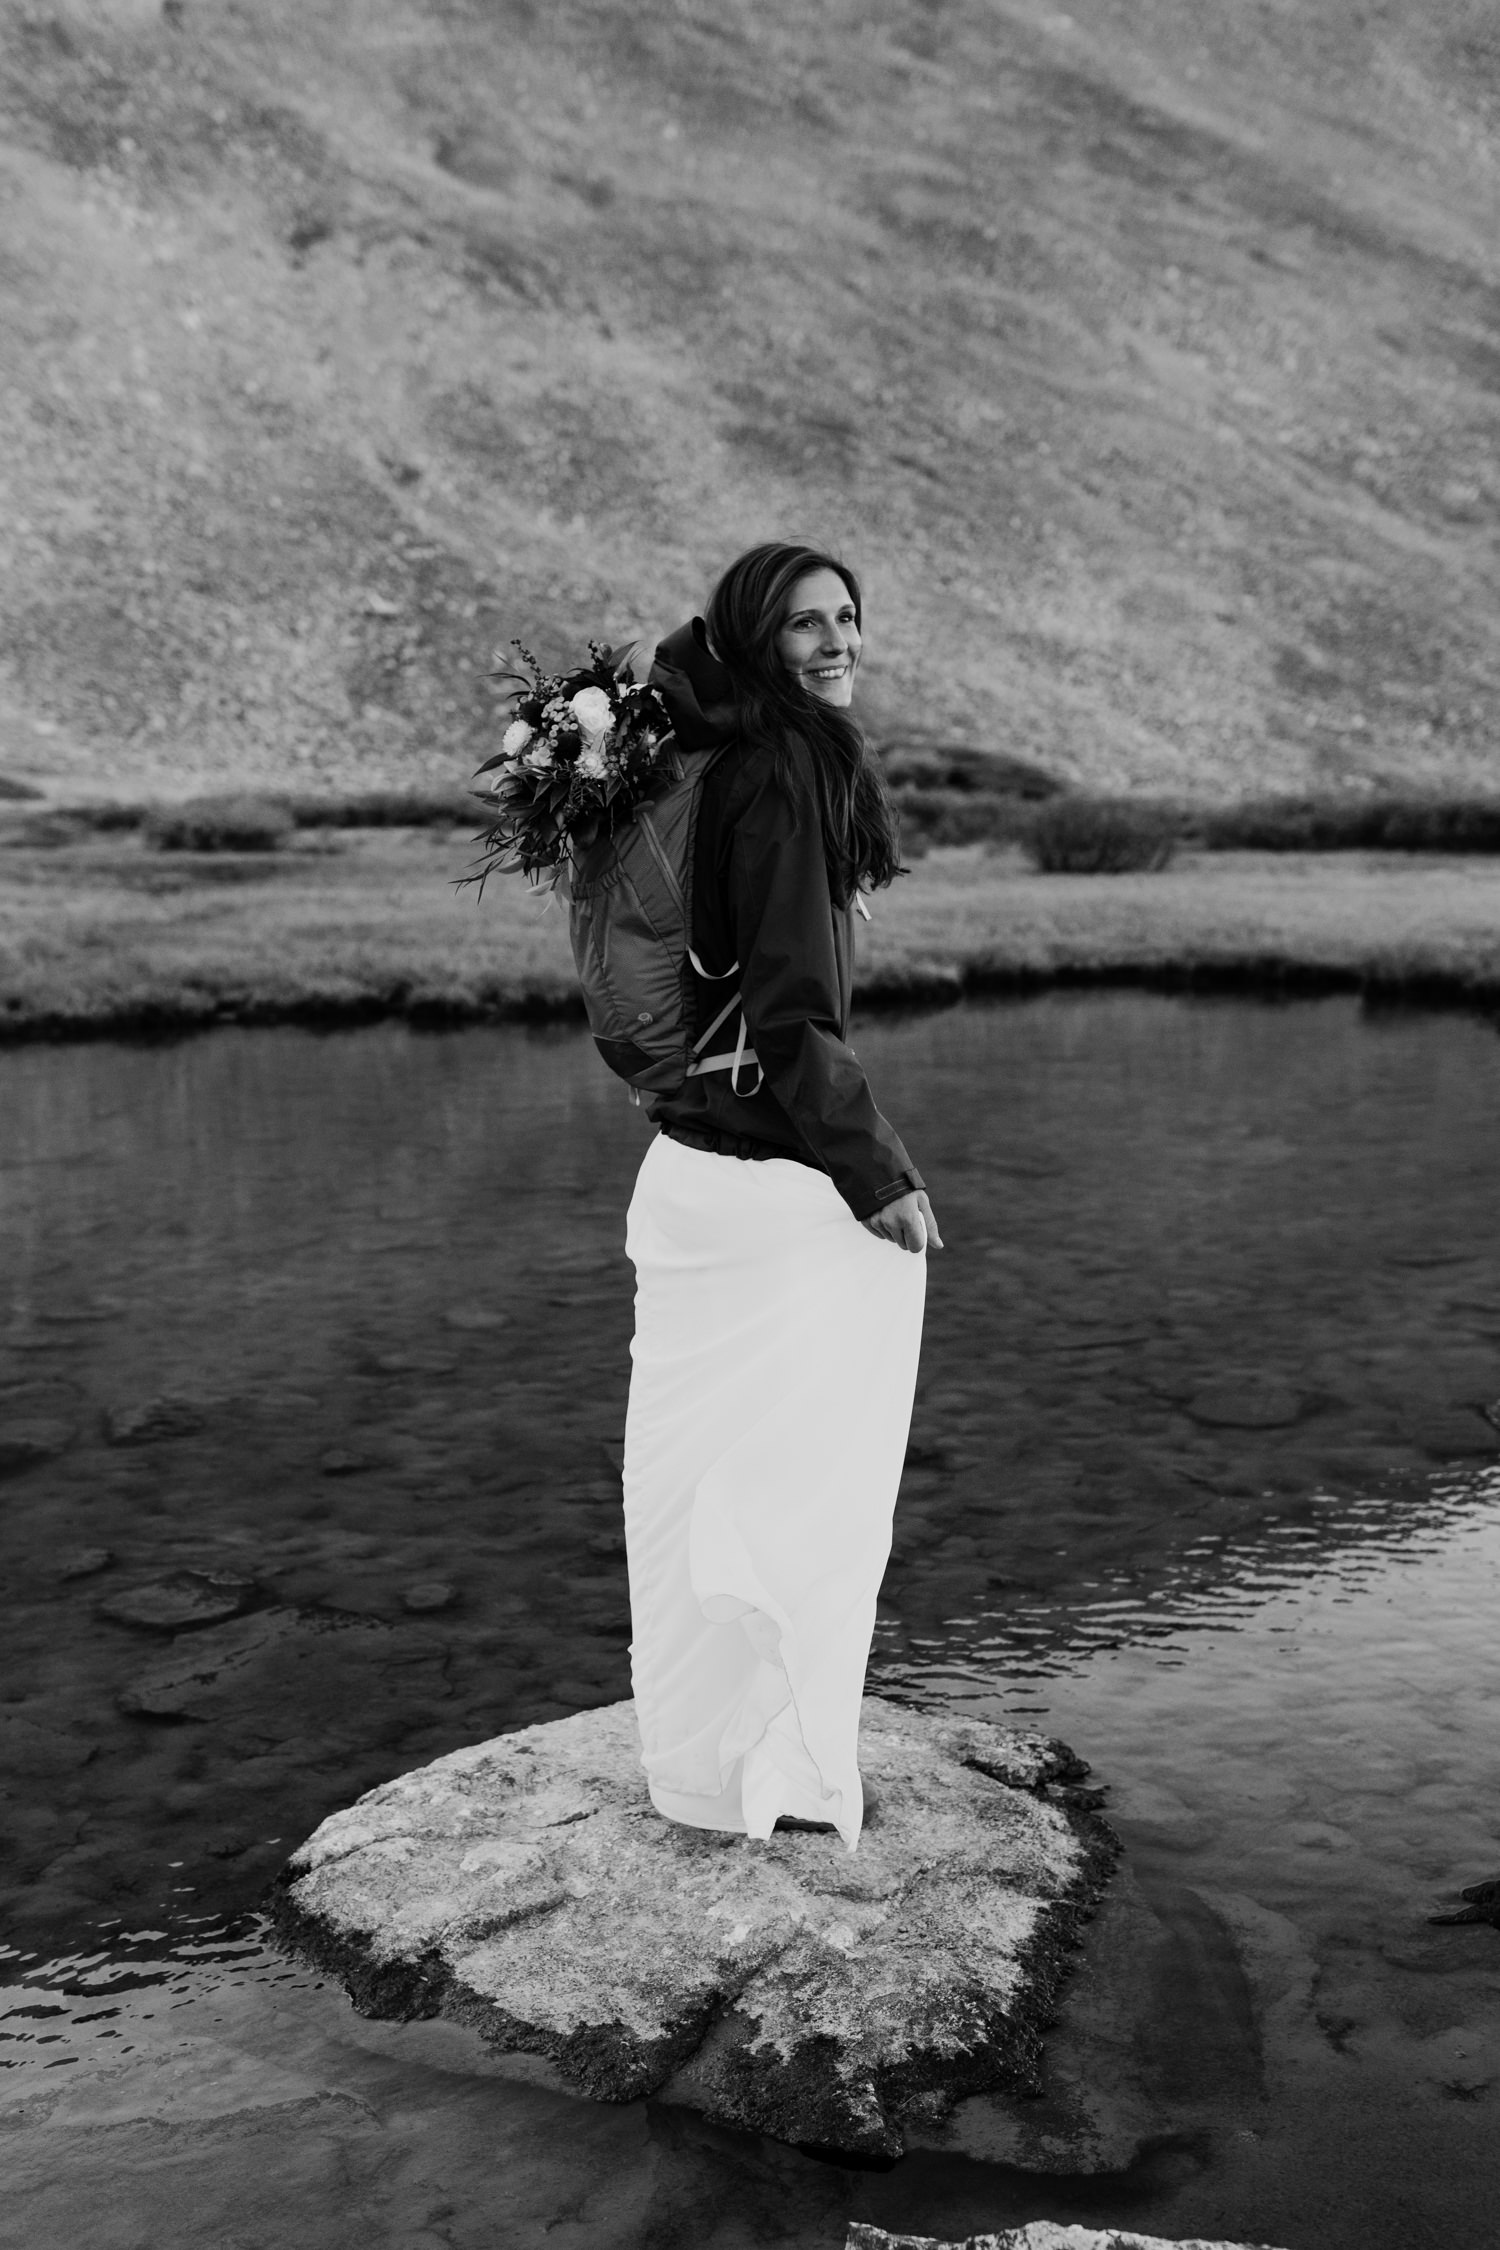 fourteener-adventure-wedding-photographer-38.jpg